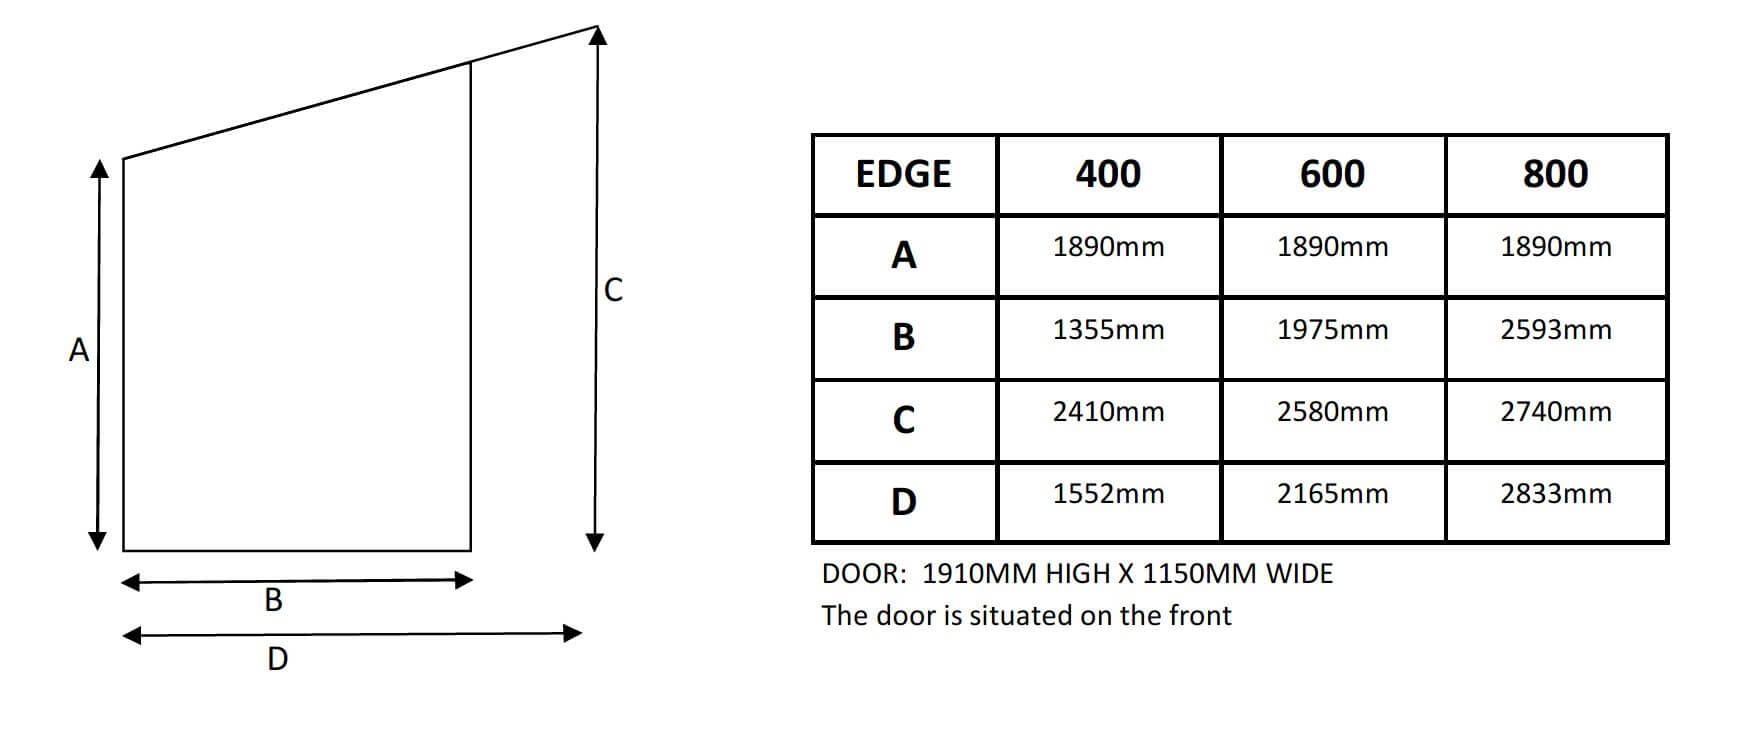 Edge Greenhouse Specifications